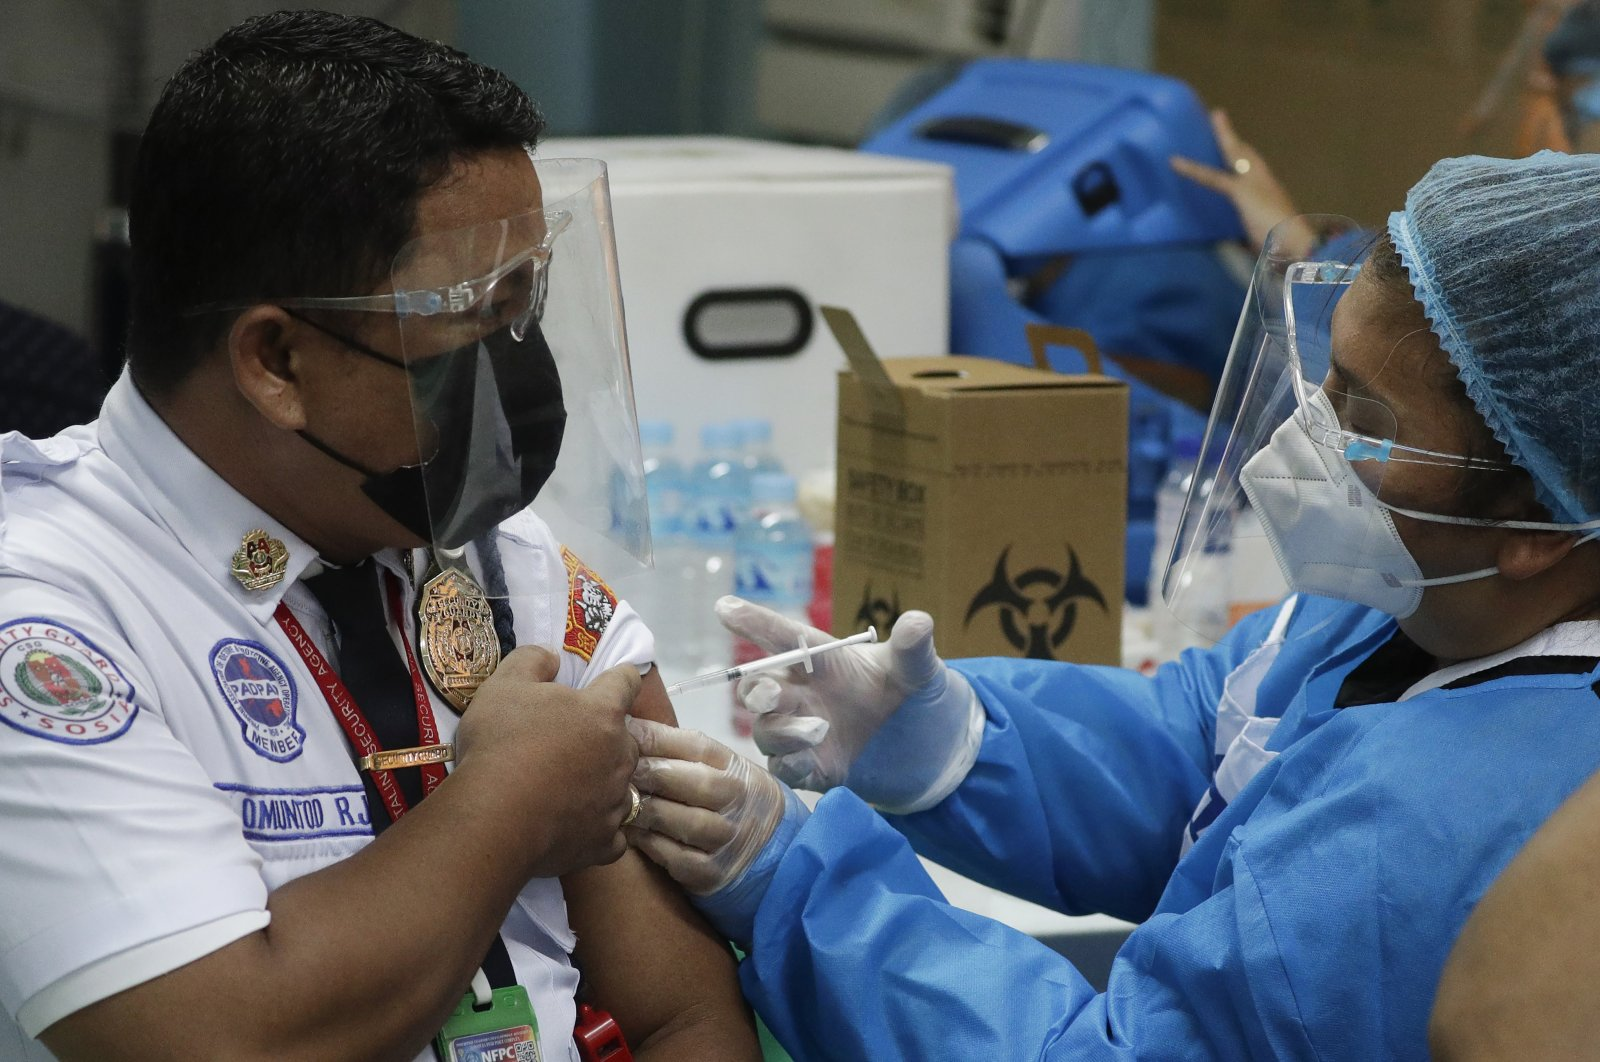 A security guard is inoculated with China's Sinovac COVID-19 vaccine at the Navotas Fish Port, Philippines, June 7, 2021. (AP Photo)